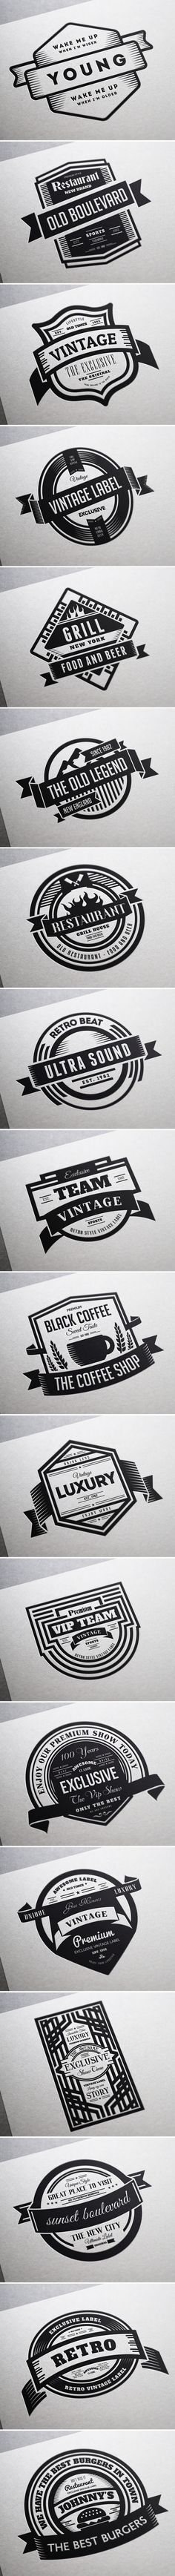 18 Vintage Labels & Badges / Logos / Insignias on Behance